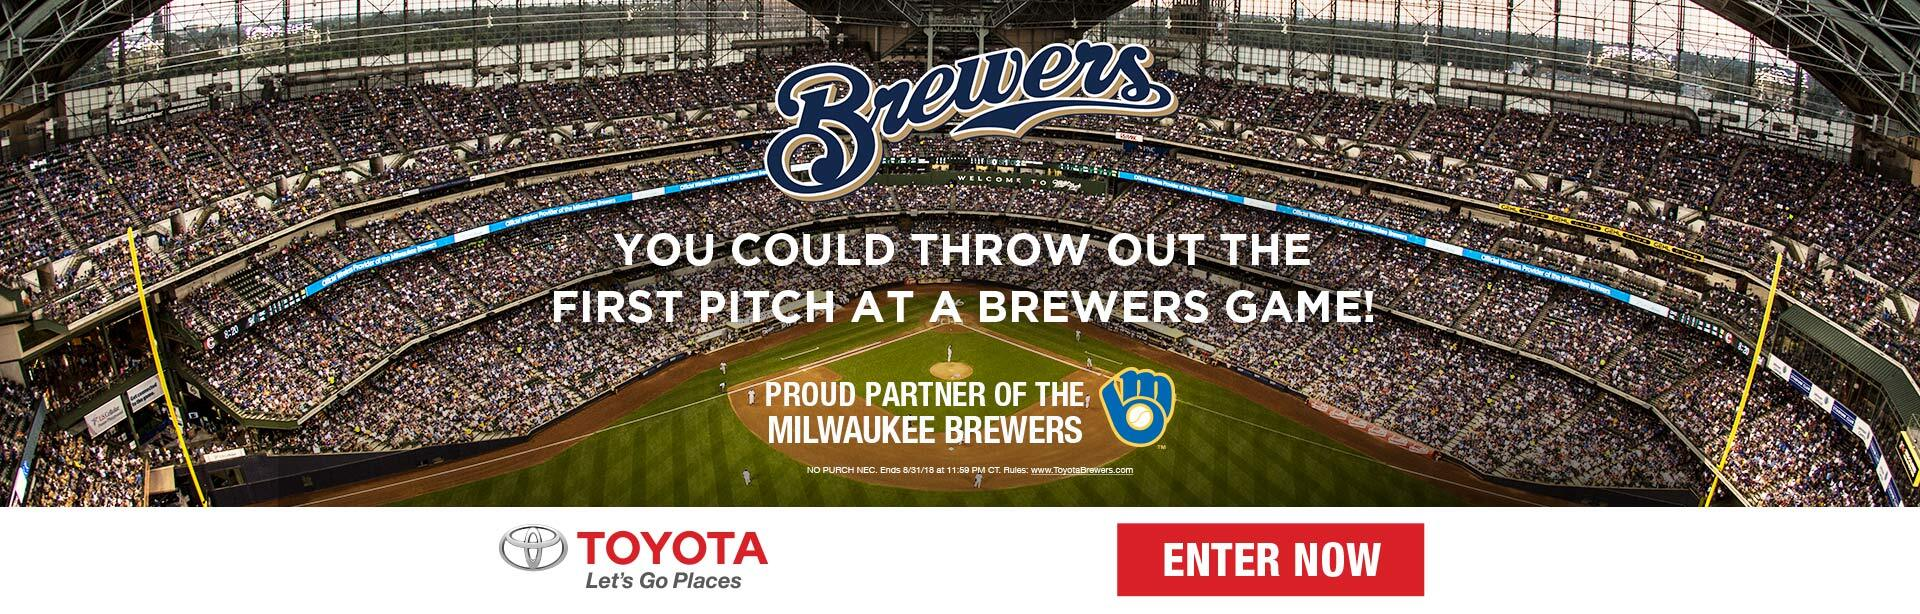 Brewers Sweepstakes